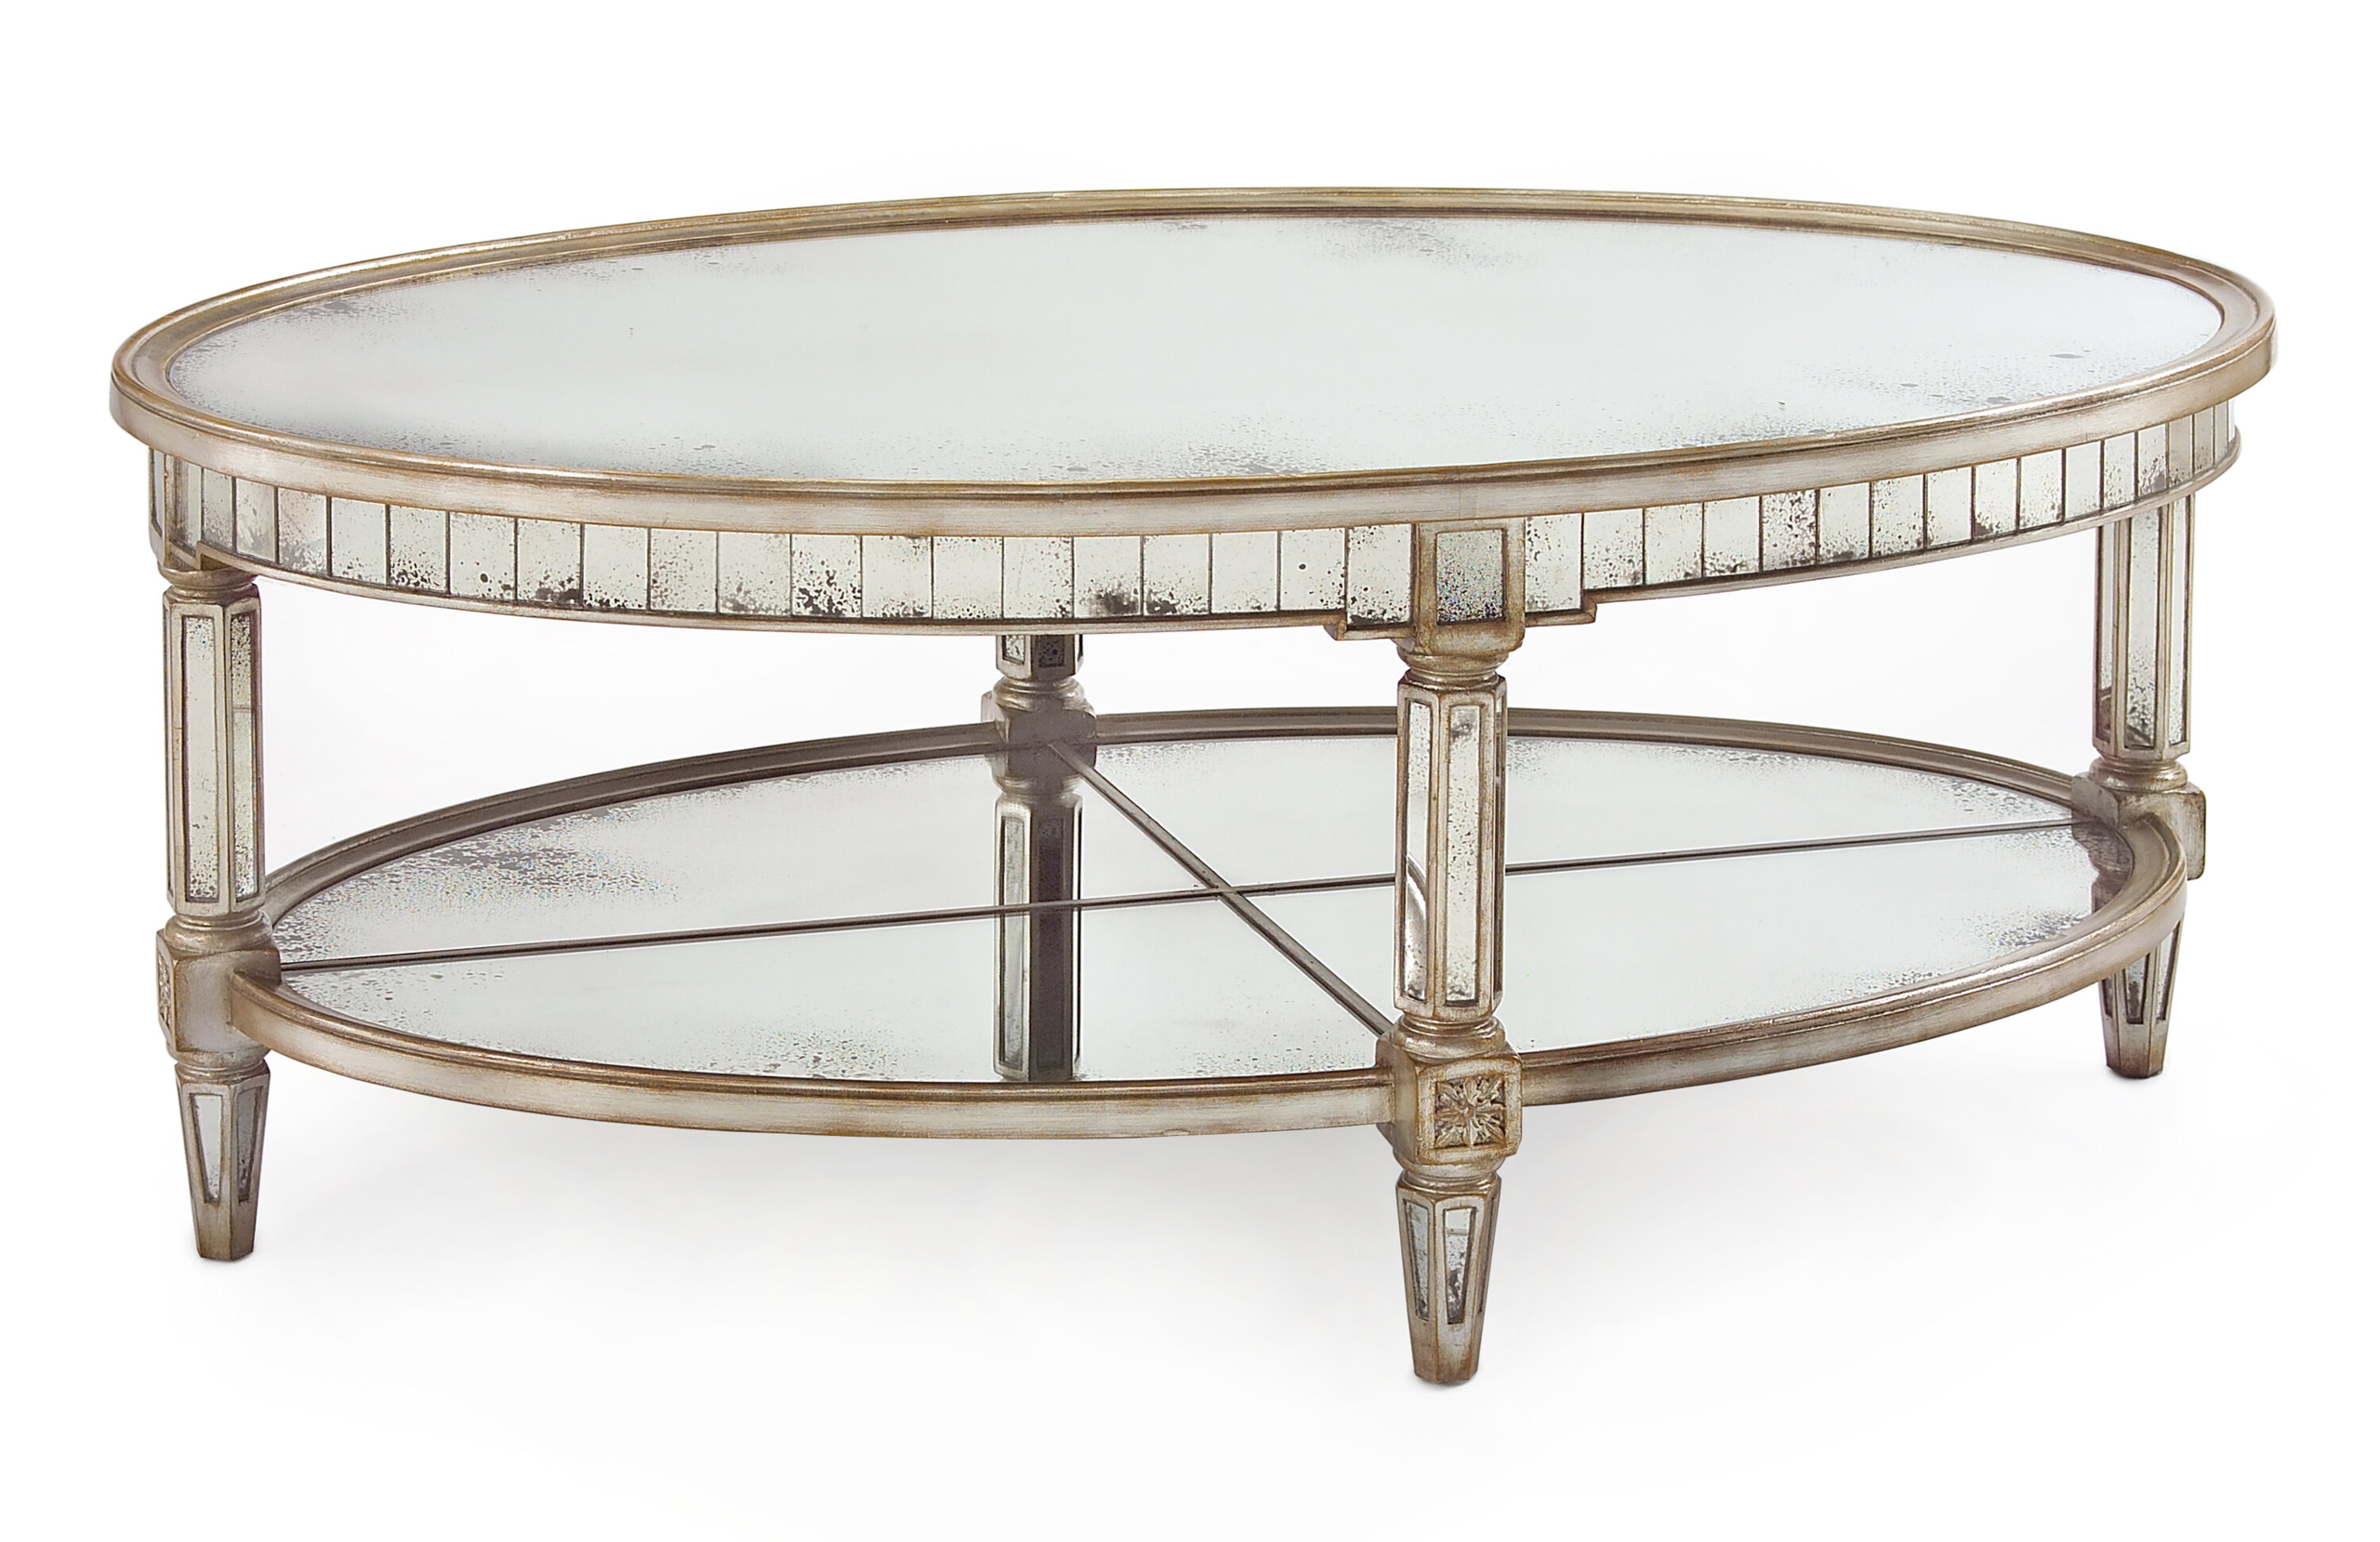 Picture of: Oval Mirrored Coffee Table Ideas On Foter